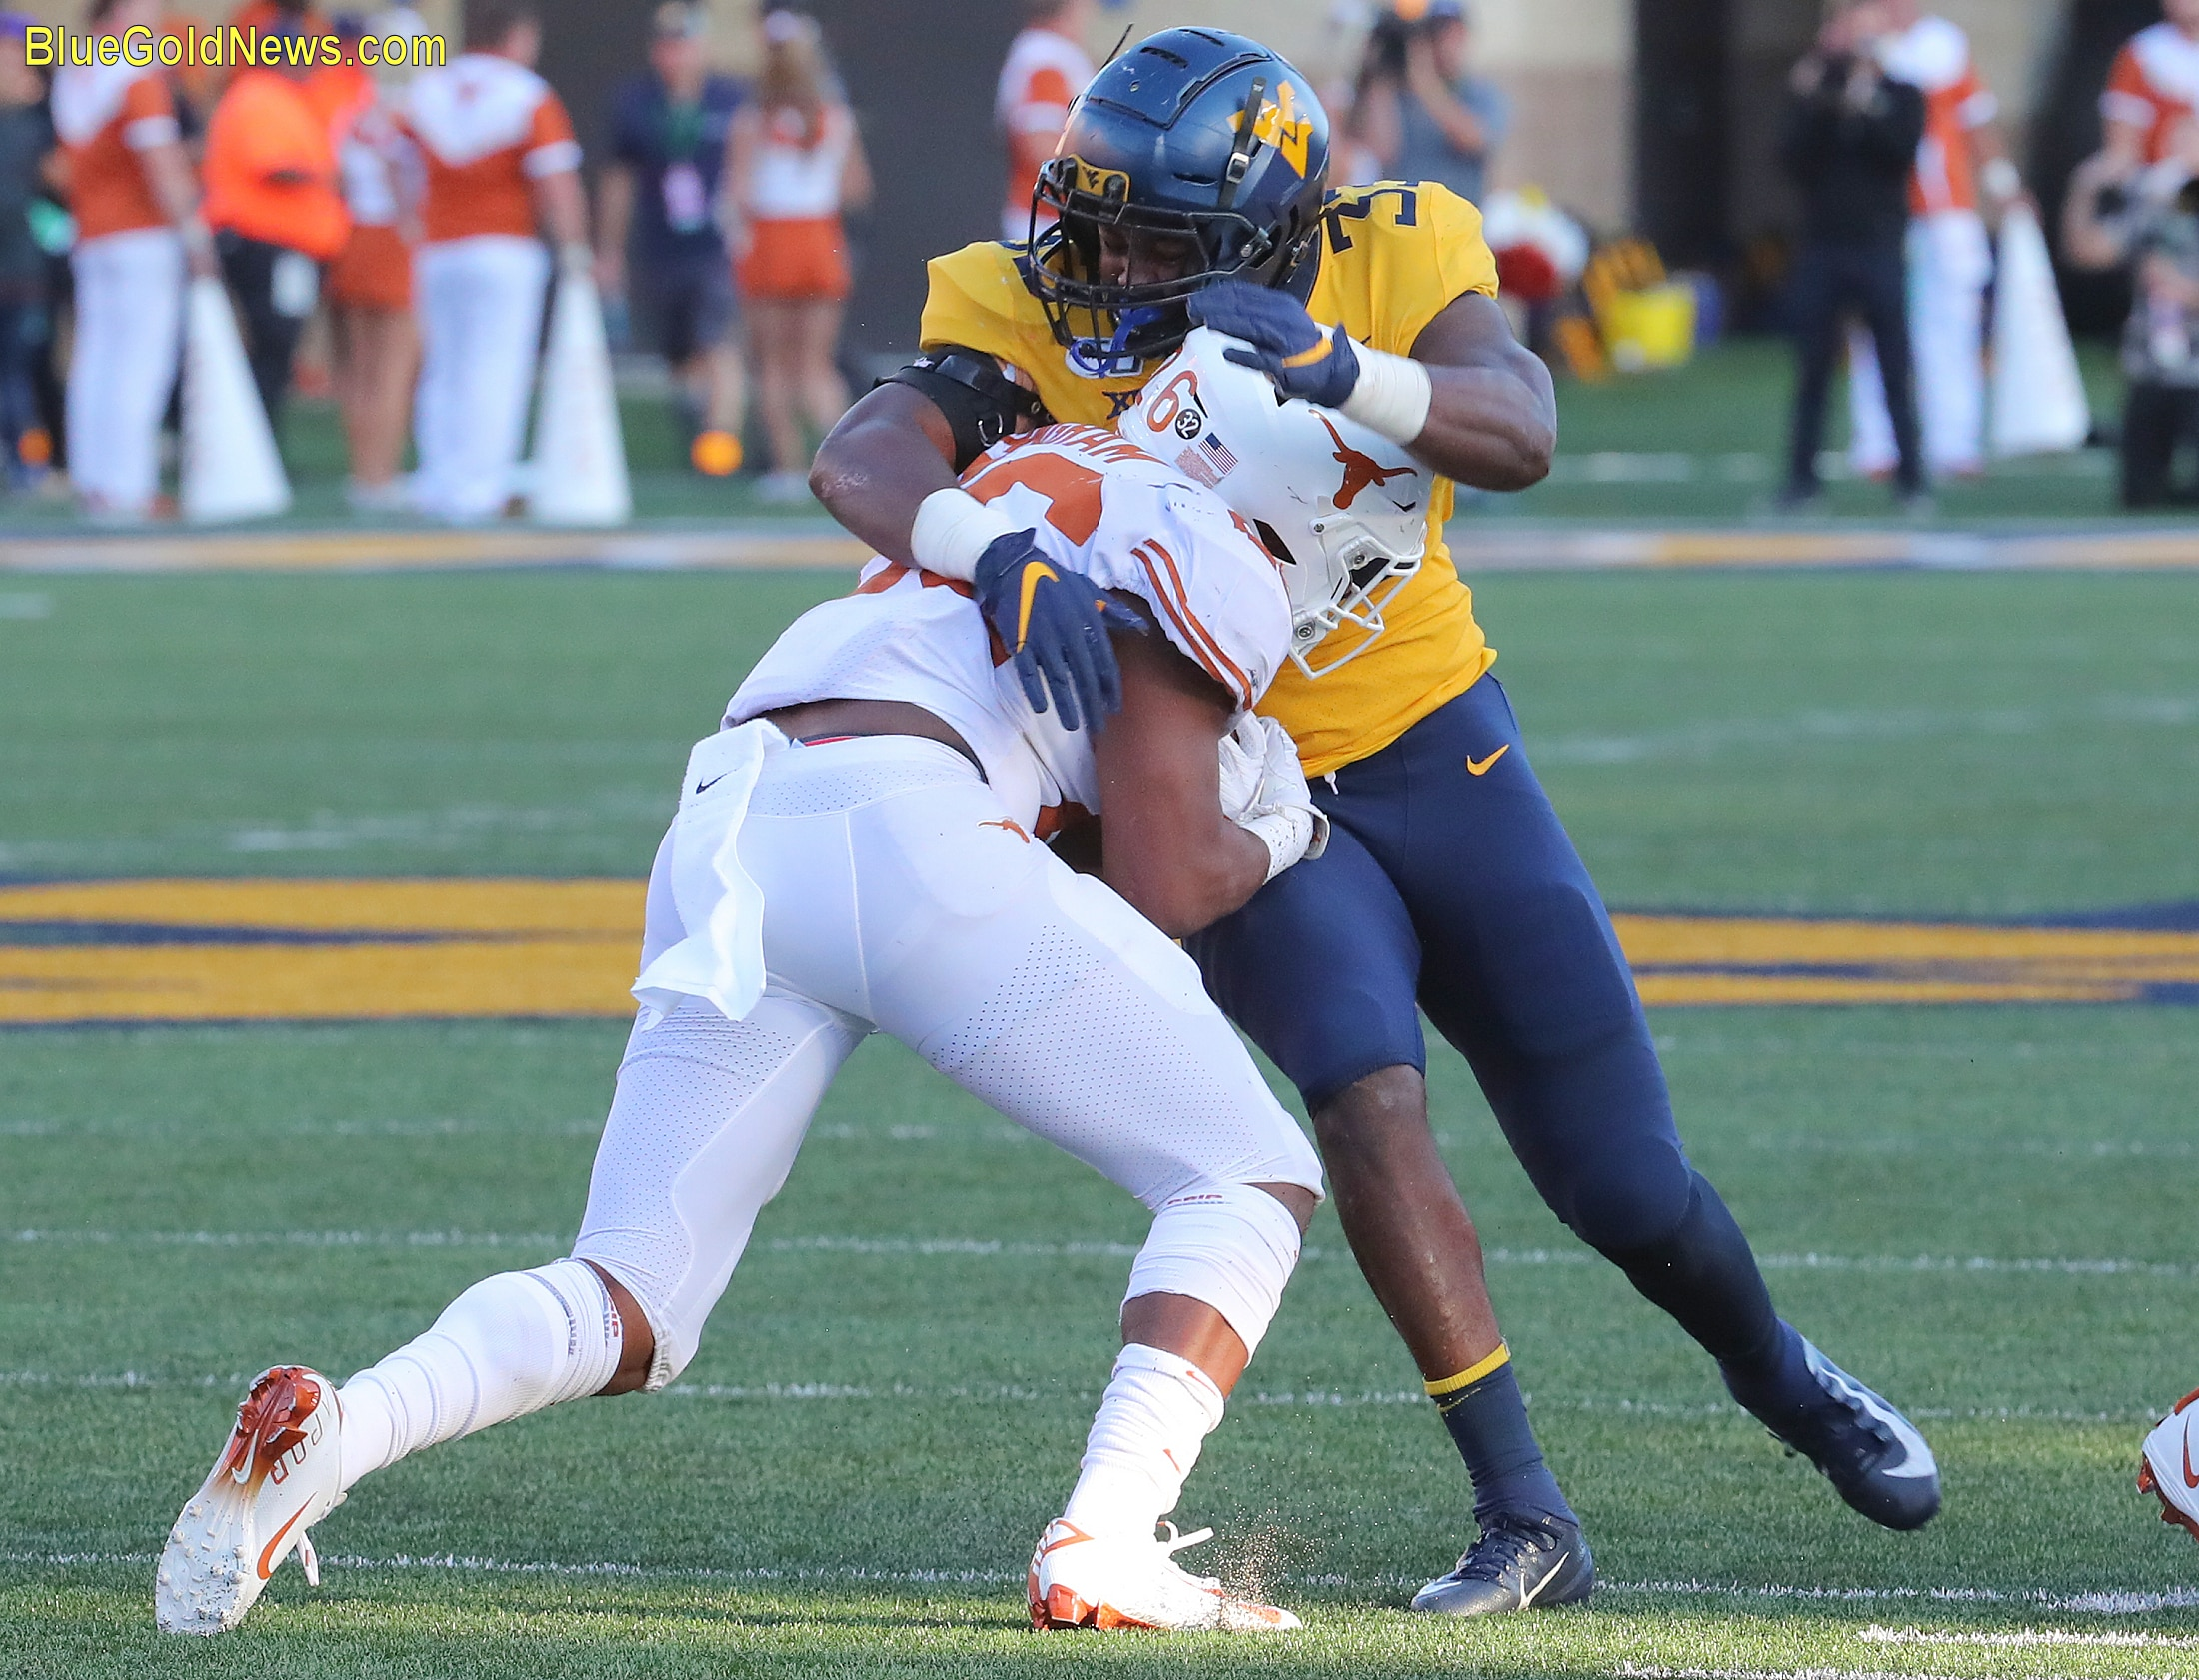 West Virginia bandit Quondarius Qualls wraps up Texas' Keontay Ingram (26)